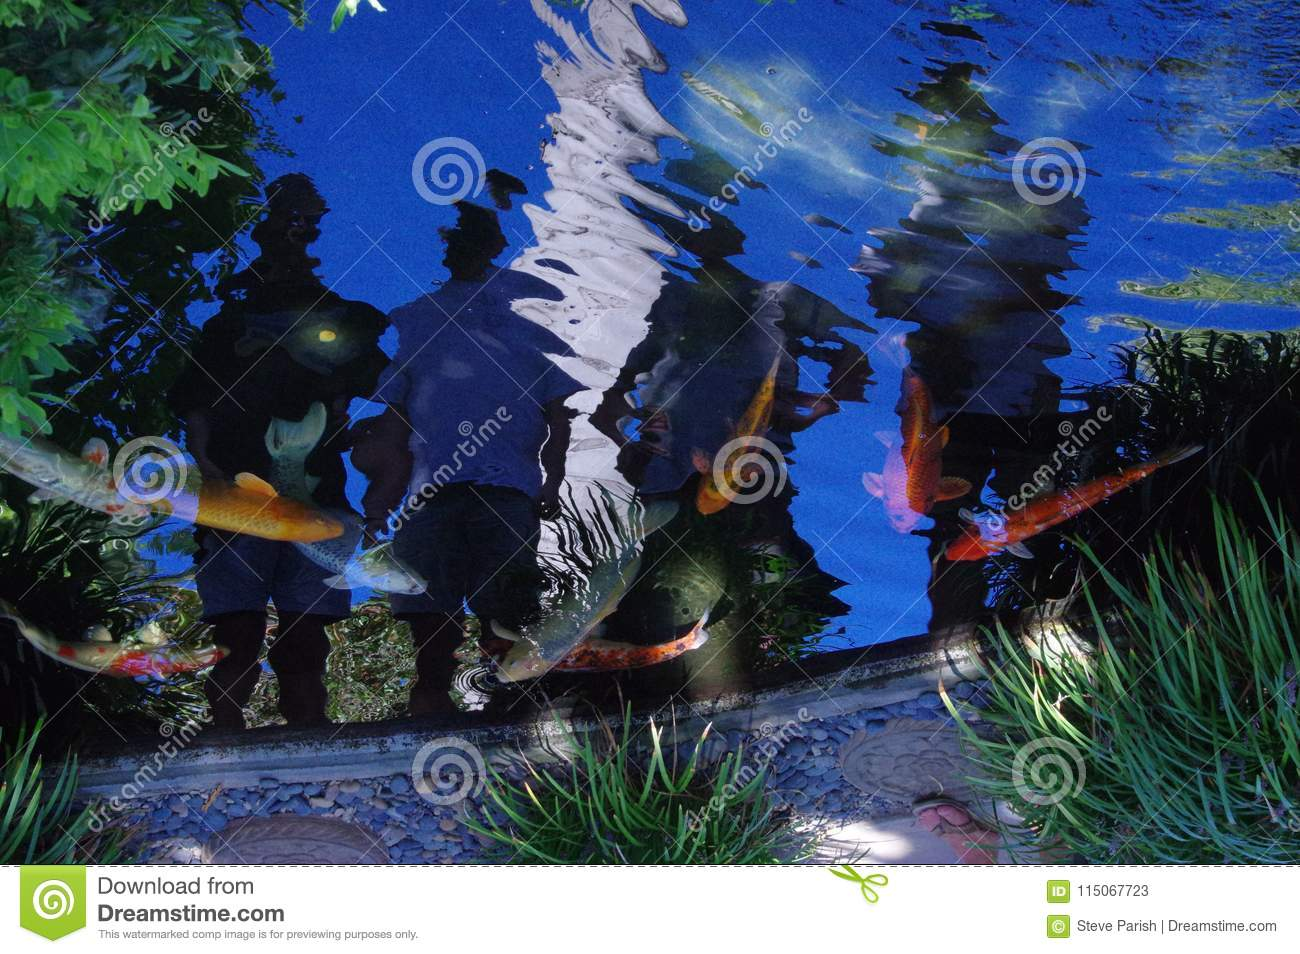 Koi pond with reflections of people